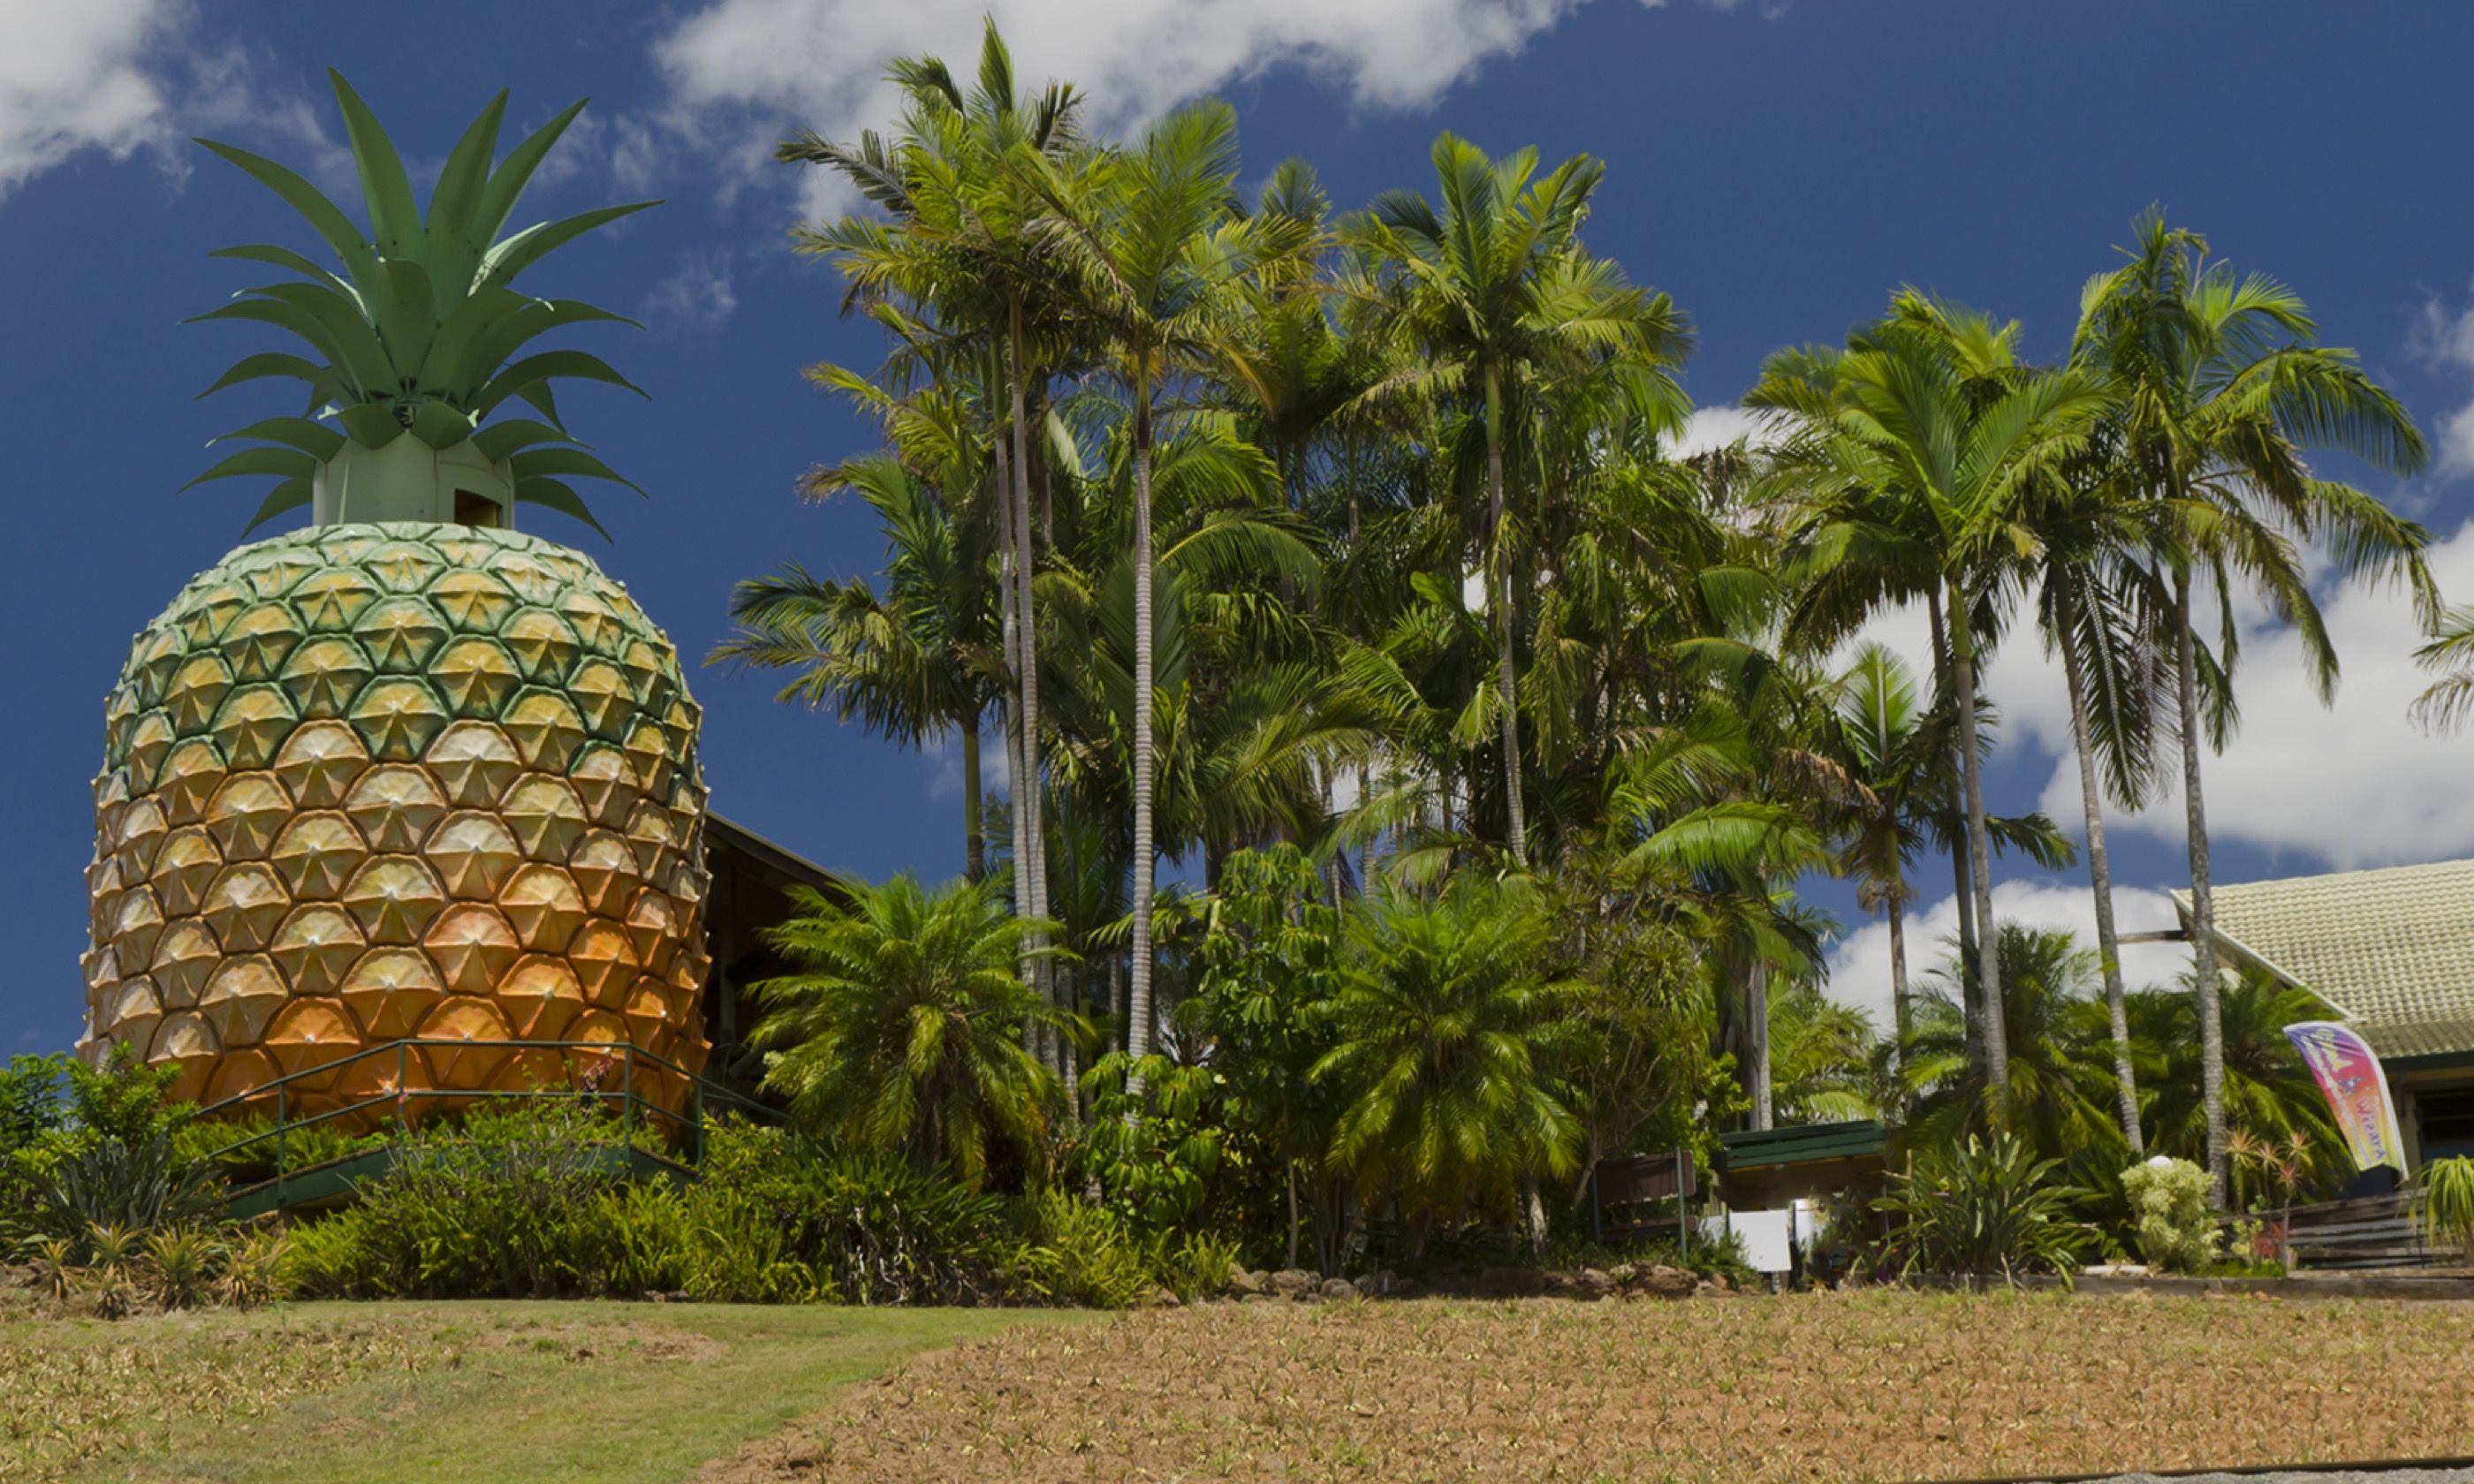 A slightly over-sized pineapple near Nambour (Dreamstime)